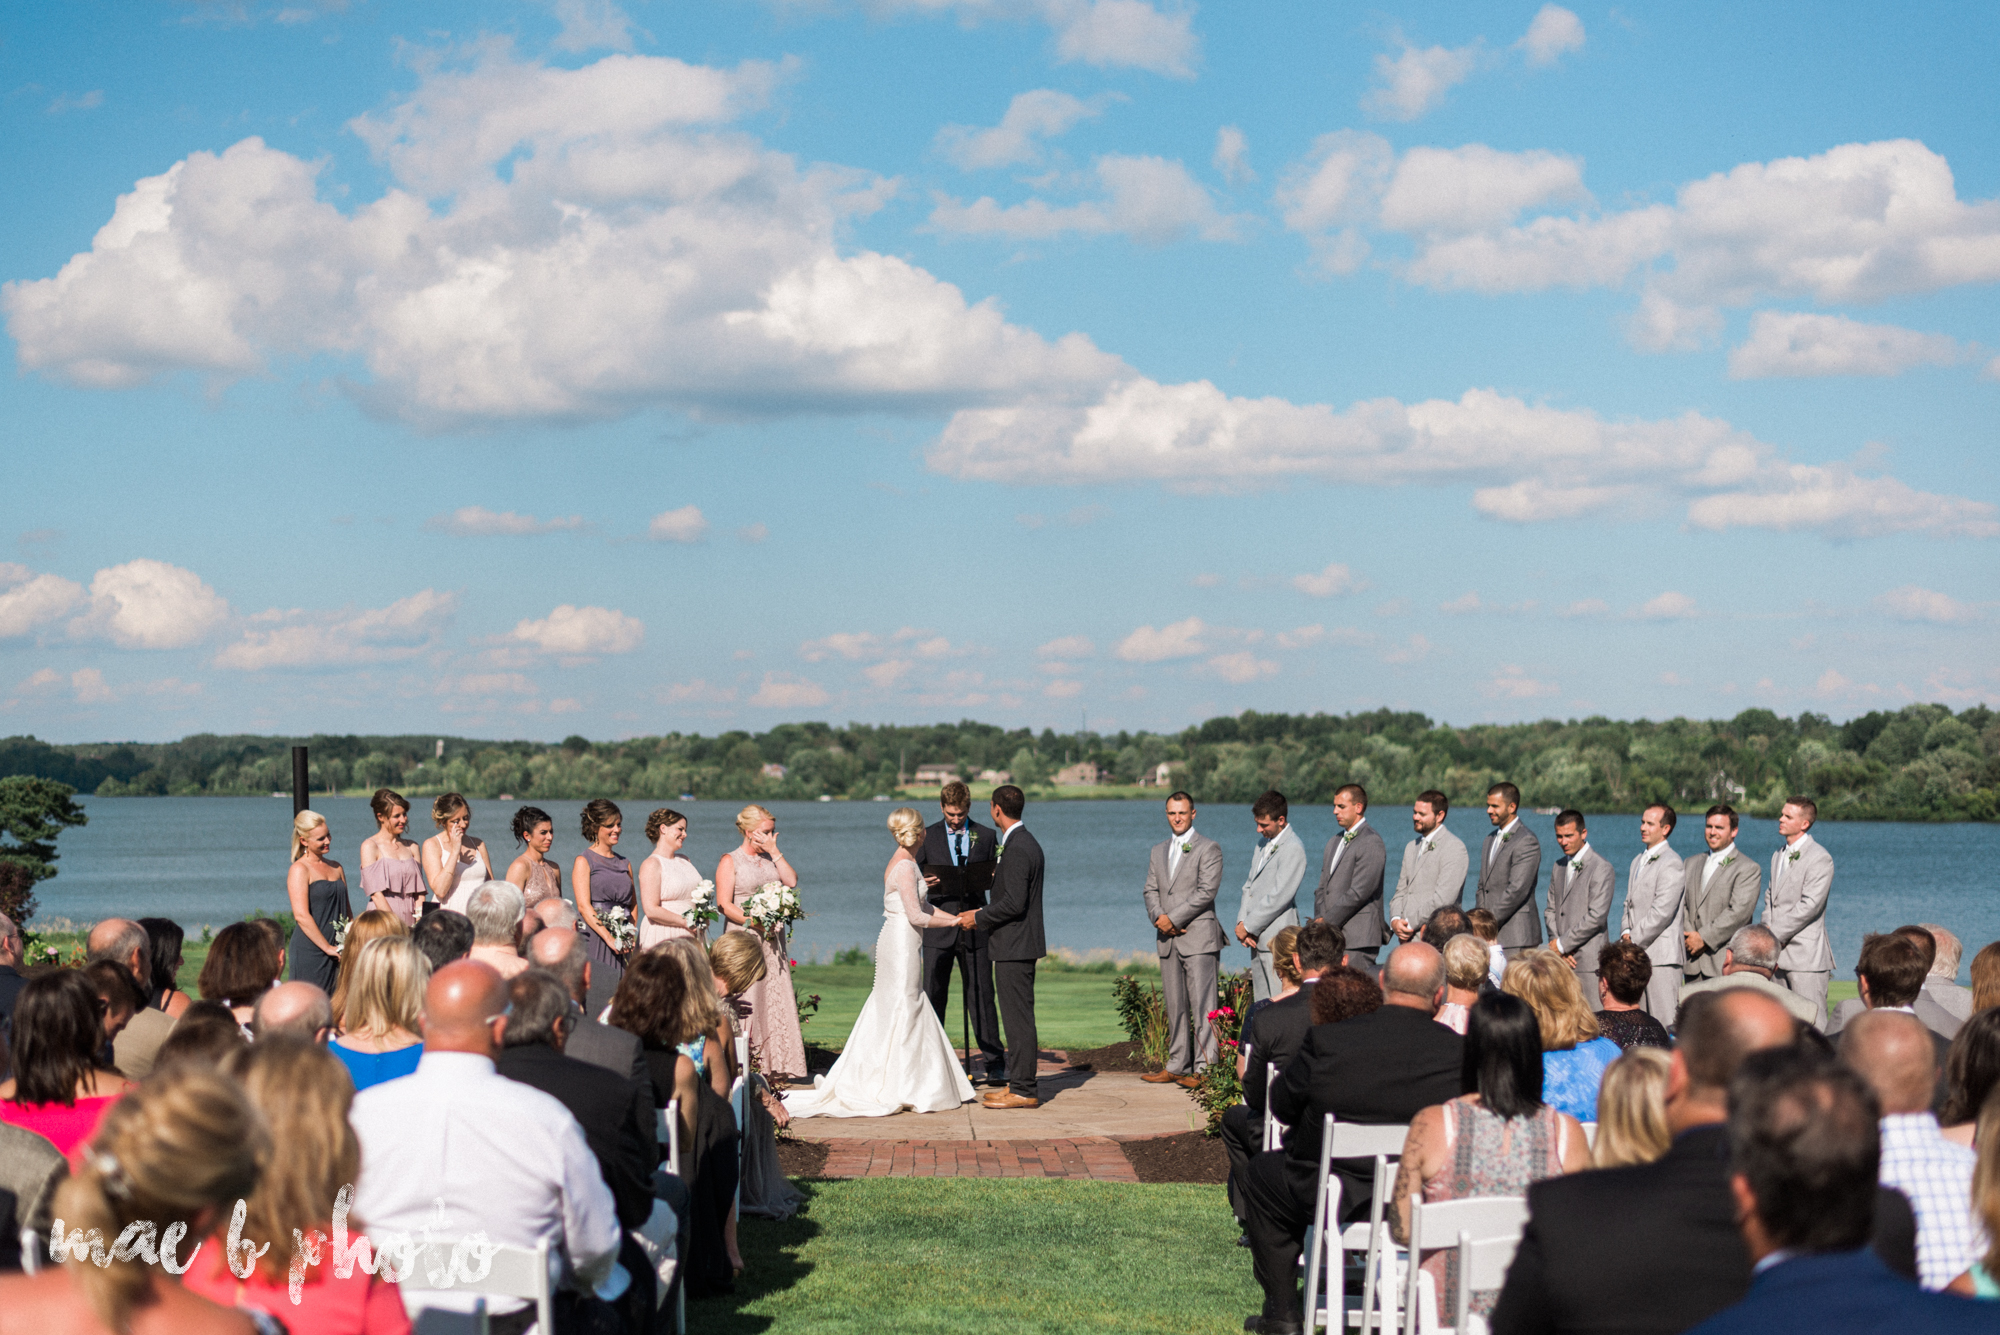 emily and michael's industrial chic summer country club wedding at the lake club in poland ohio photographed by cleveland wedding photographer mae b photo-99.jpg